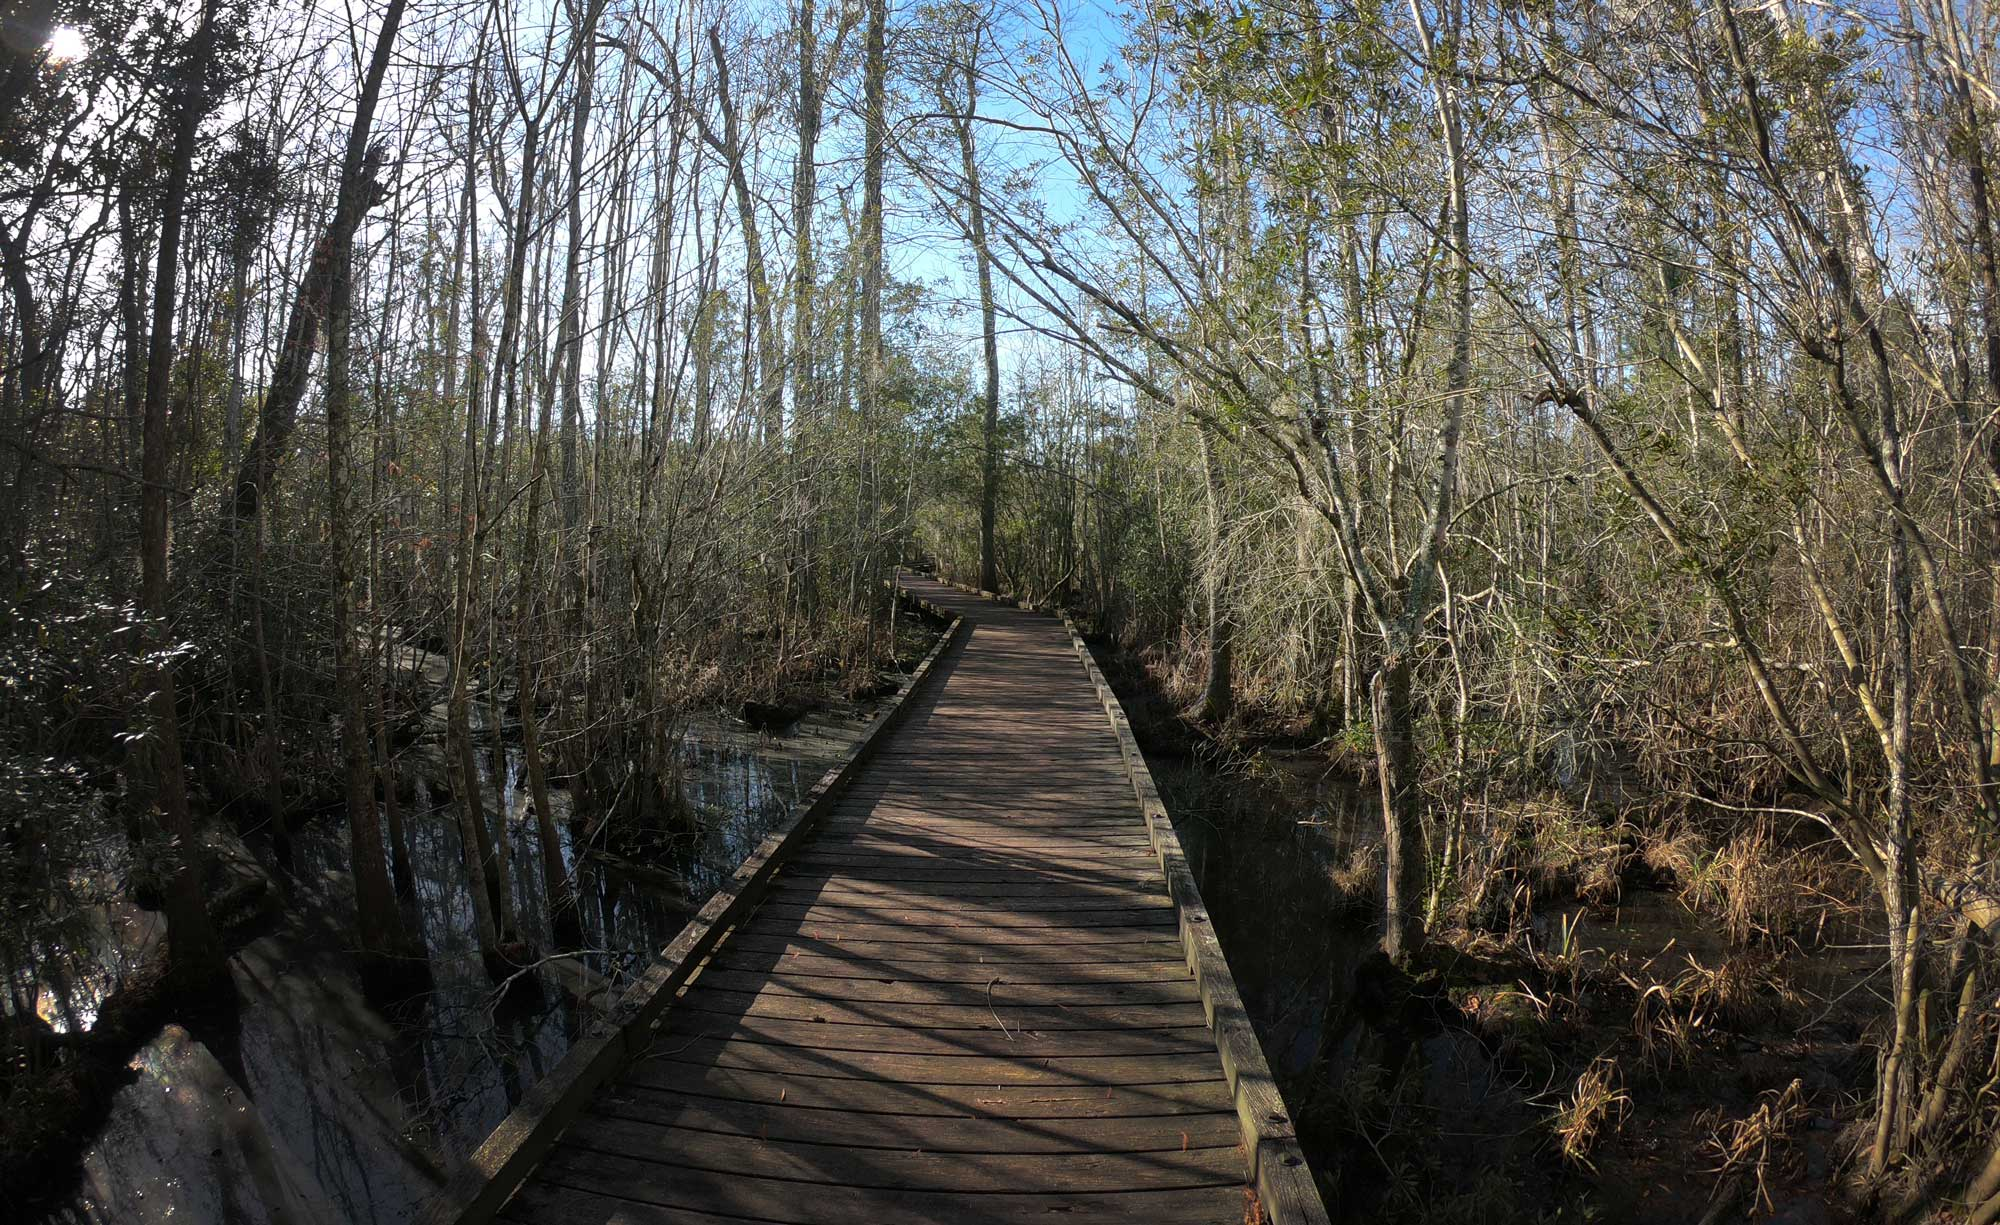 Goose Creek State Park Palmetto Boardwalk through wetlands in North Carolina